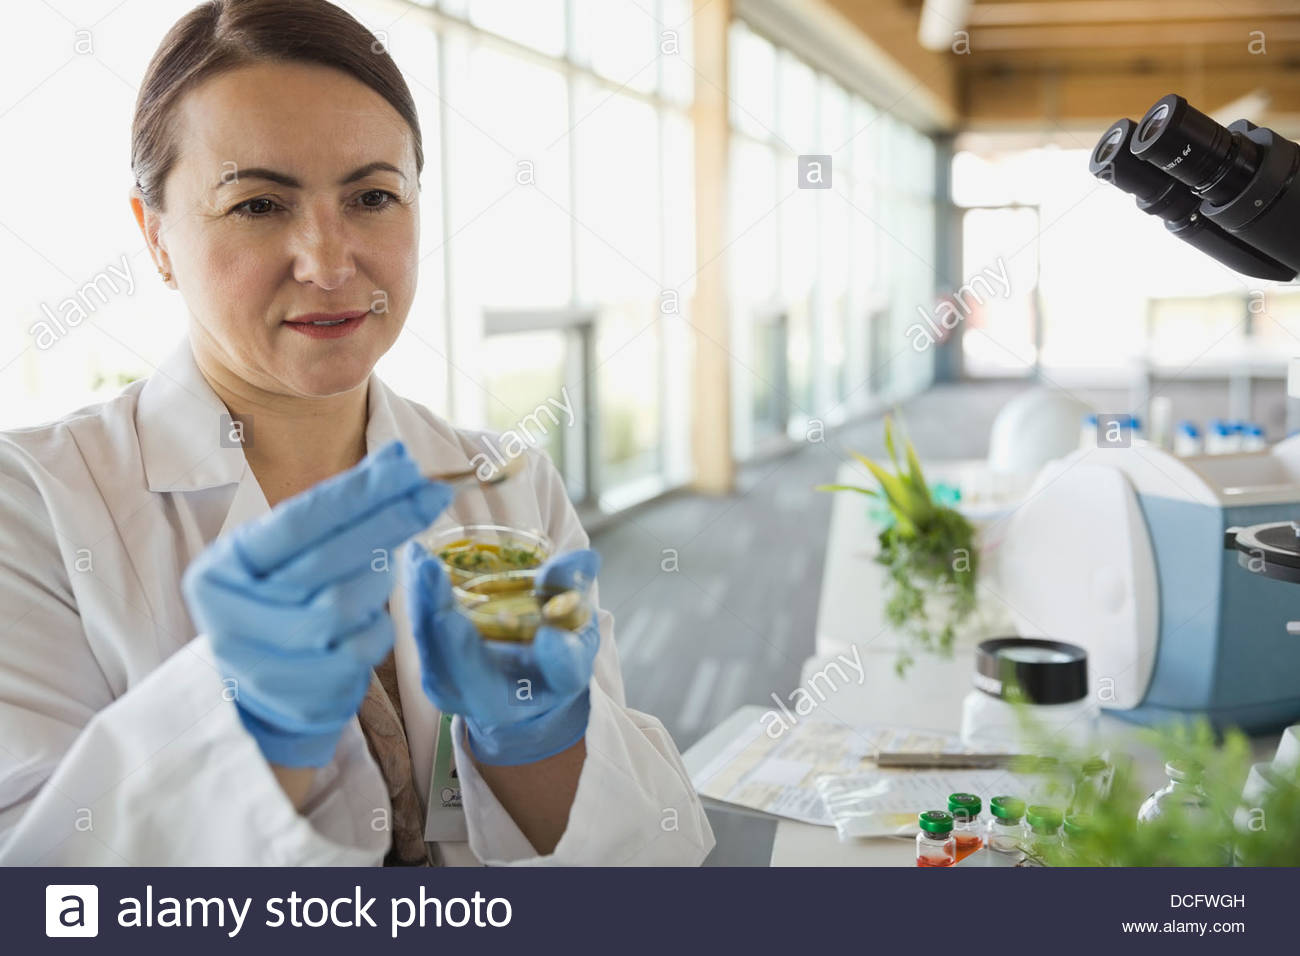 Female botanist working in laboratory - Stock Image